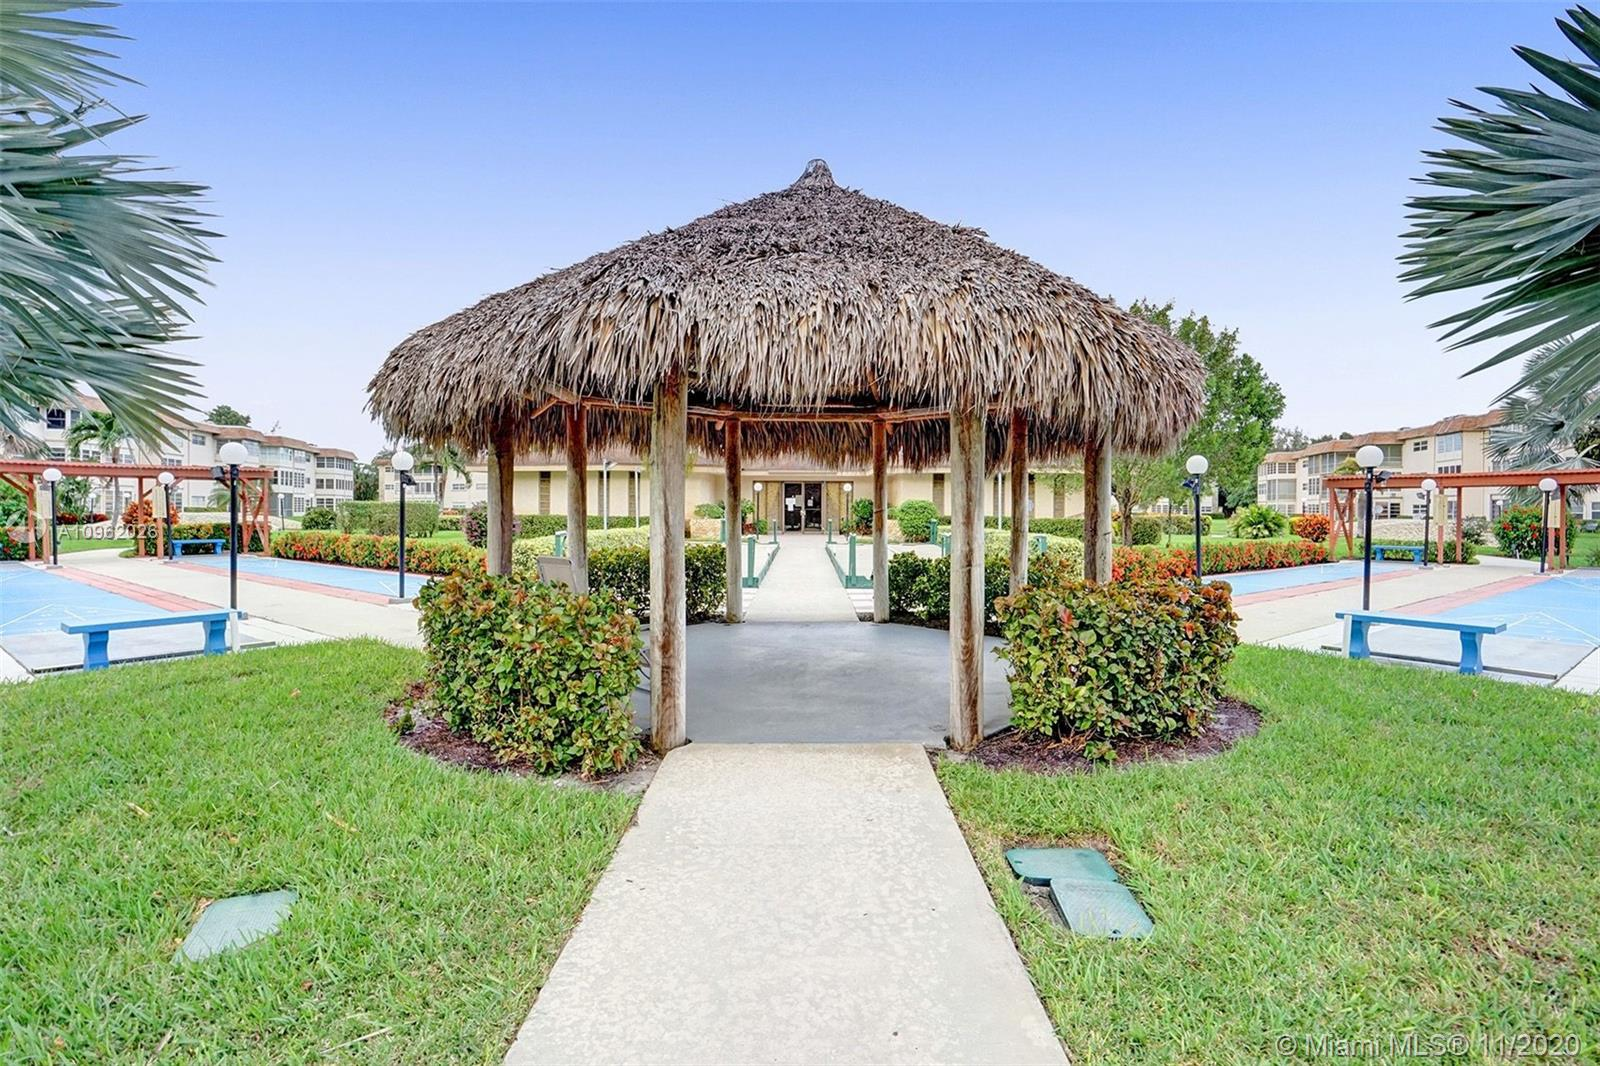 Beautiful unit completely remodeled with tile floor throughout, new white opened kitchen, and new bathroom. This one will sell all furnished and turnkey. Located in Phase 5 of Hawaiian gardens with lots of activities and beautiful views on the lake, the pool and the game area. Large patio to relax and enjoy the views or to lodge your visitor for the night. Close to the malls, grocery and casino.